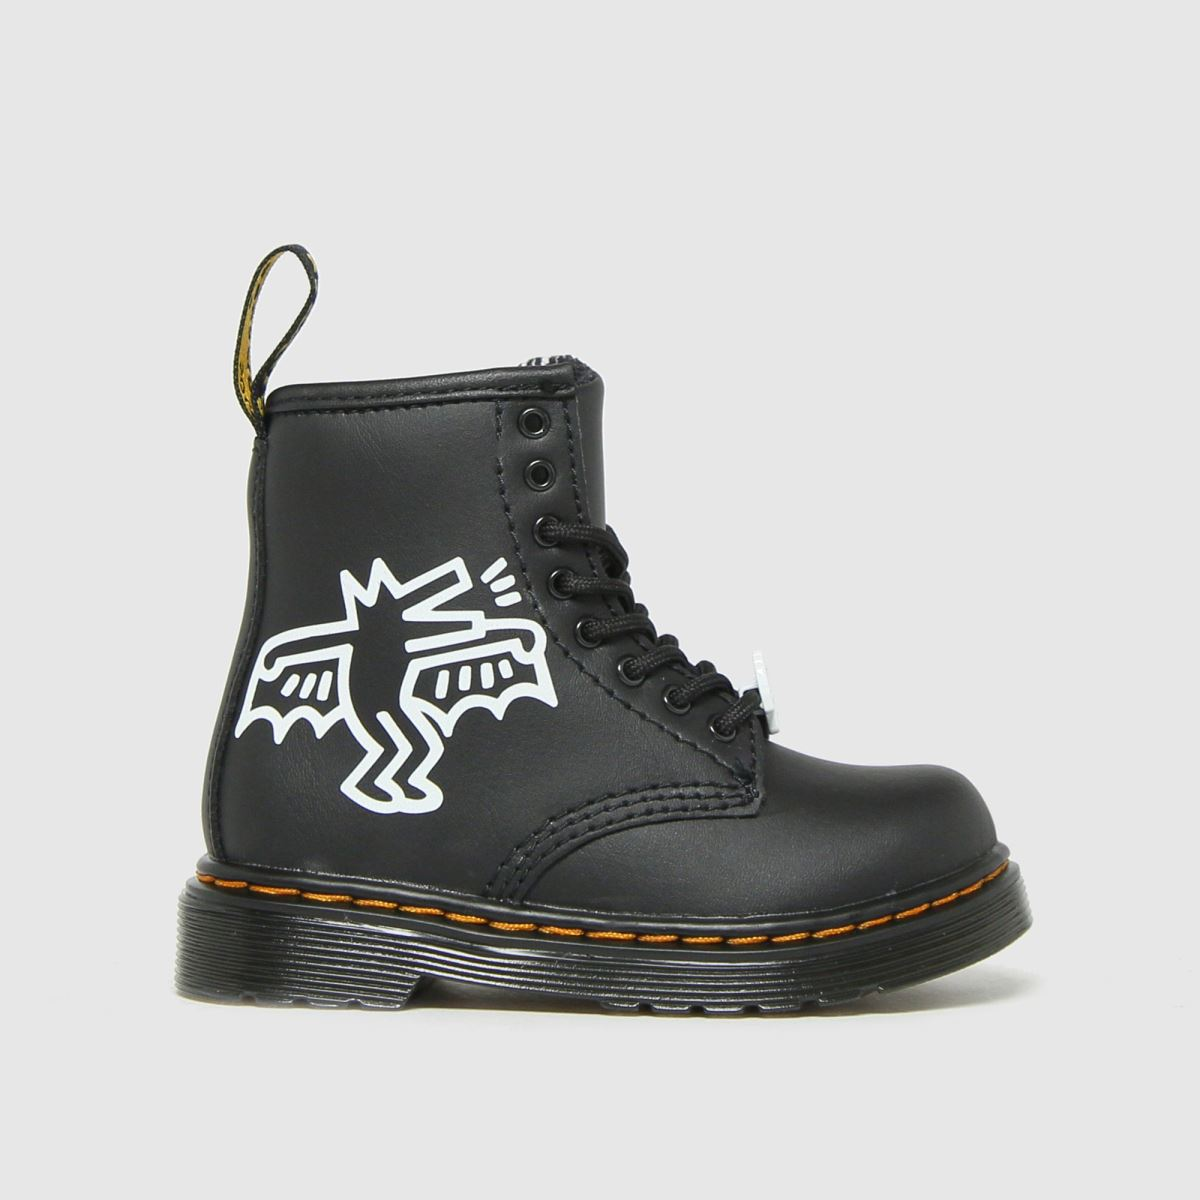 Dr Martens Black & White 1460 Keith Haring Boots Toddler